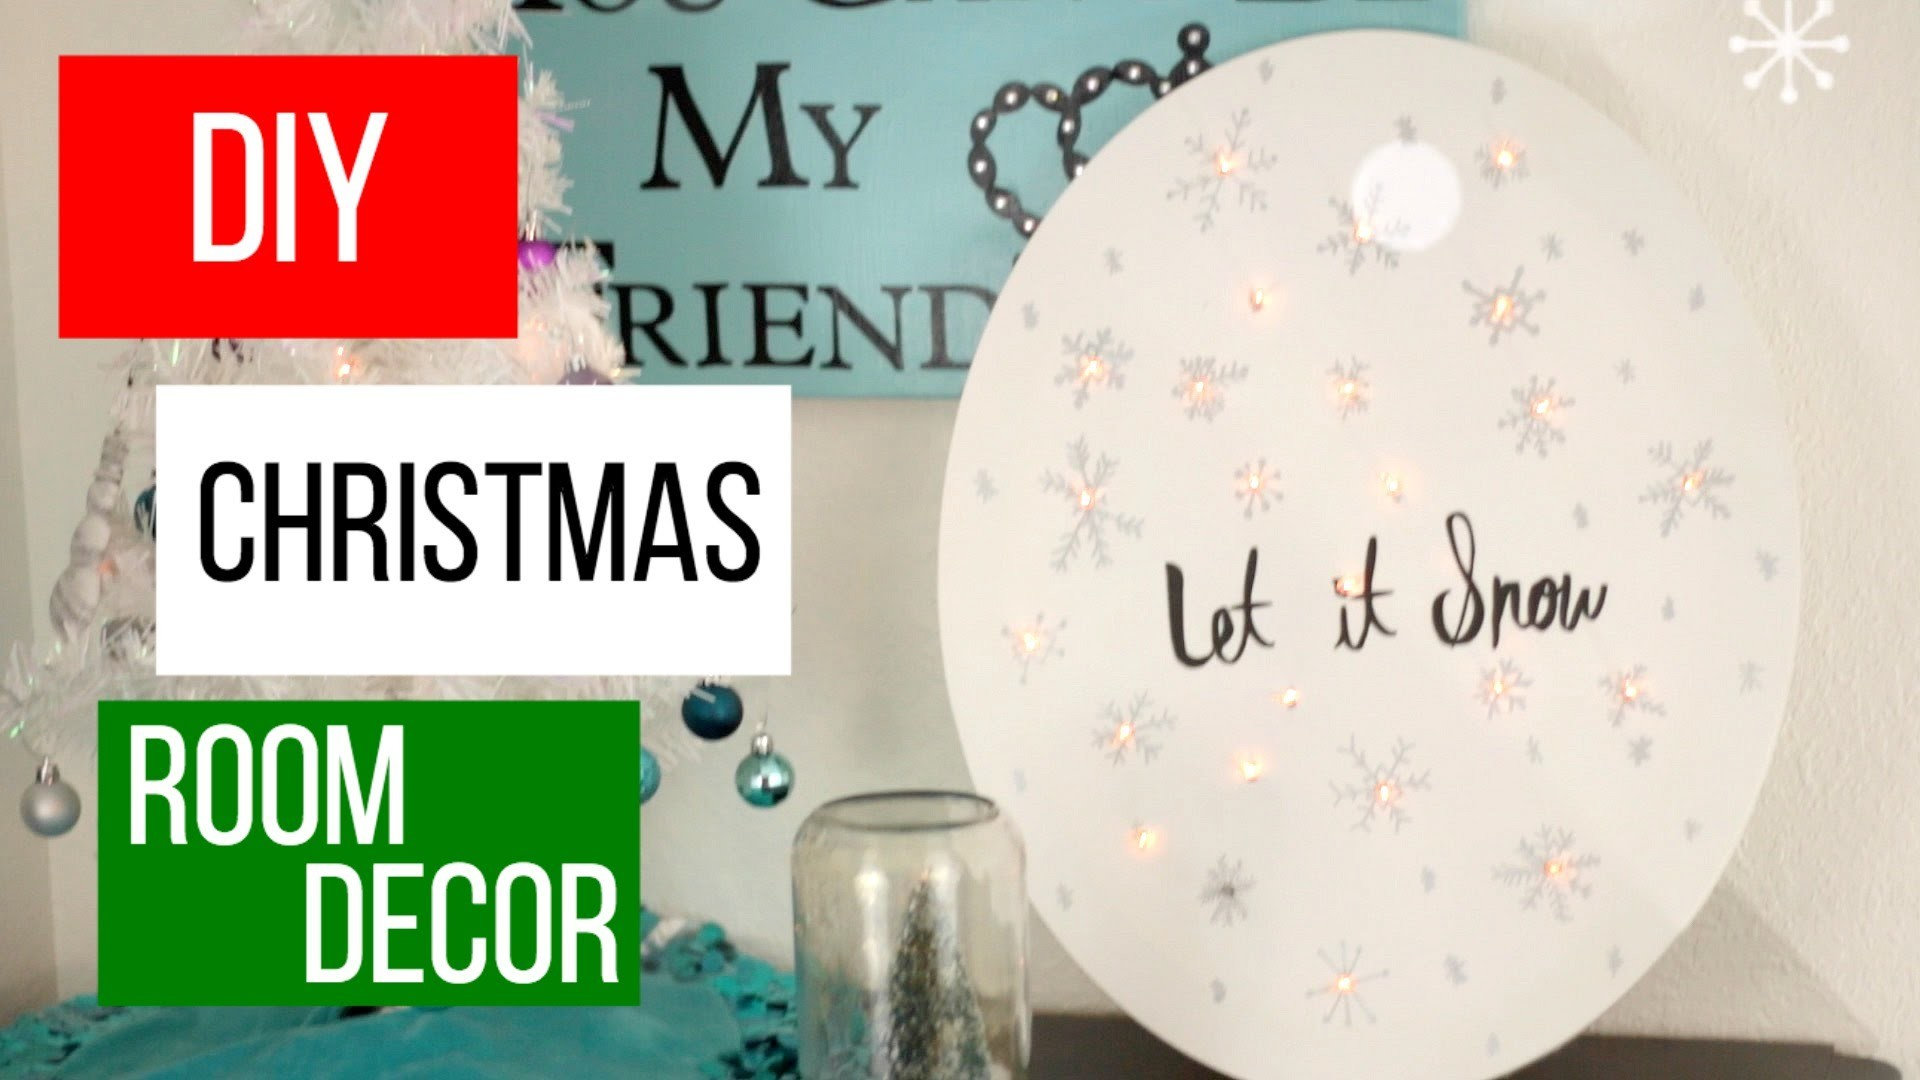 DIY Holiday Room Decor | Easy DIY Christmas Room Decor